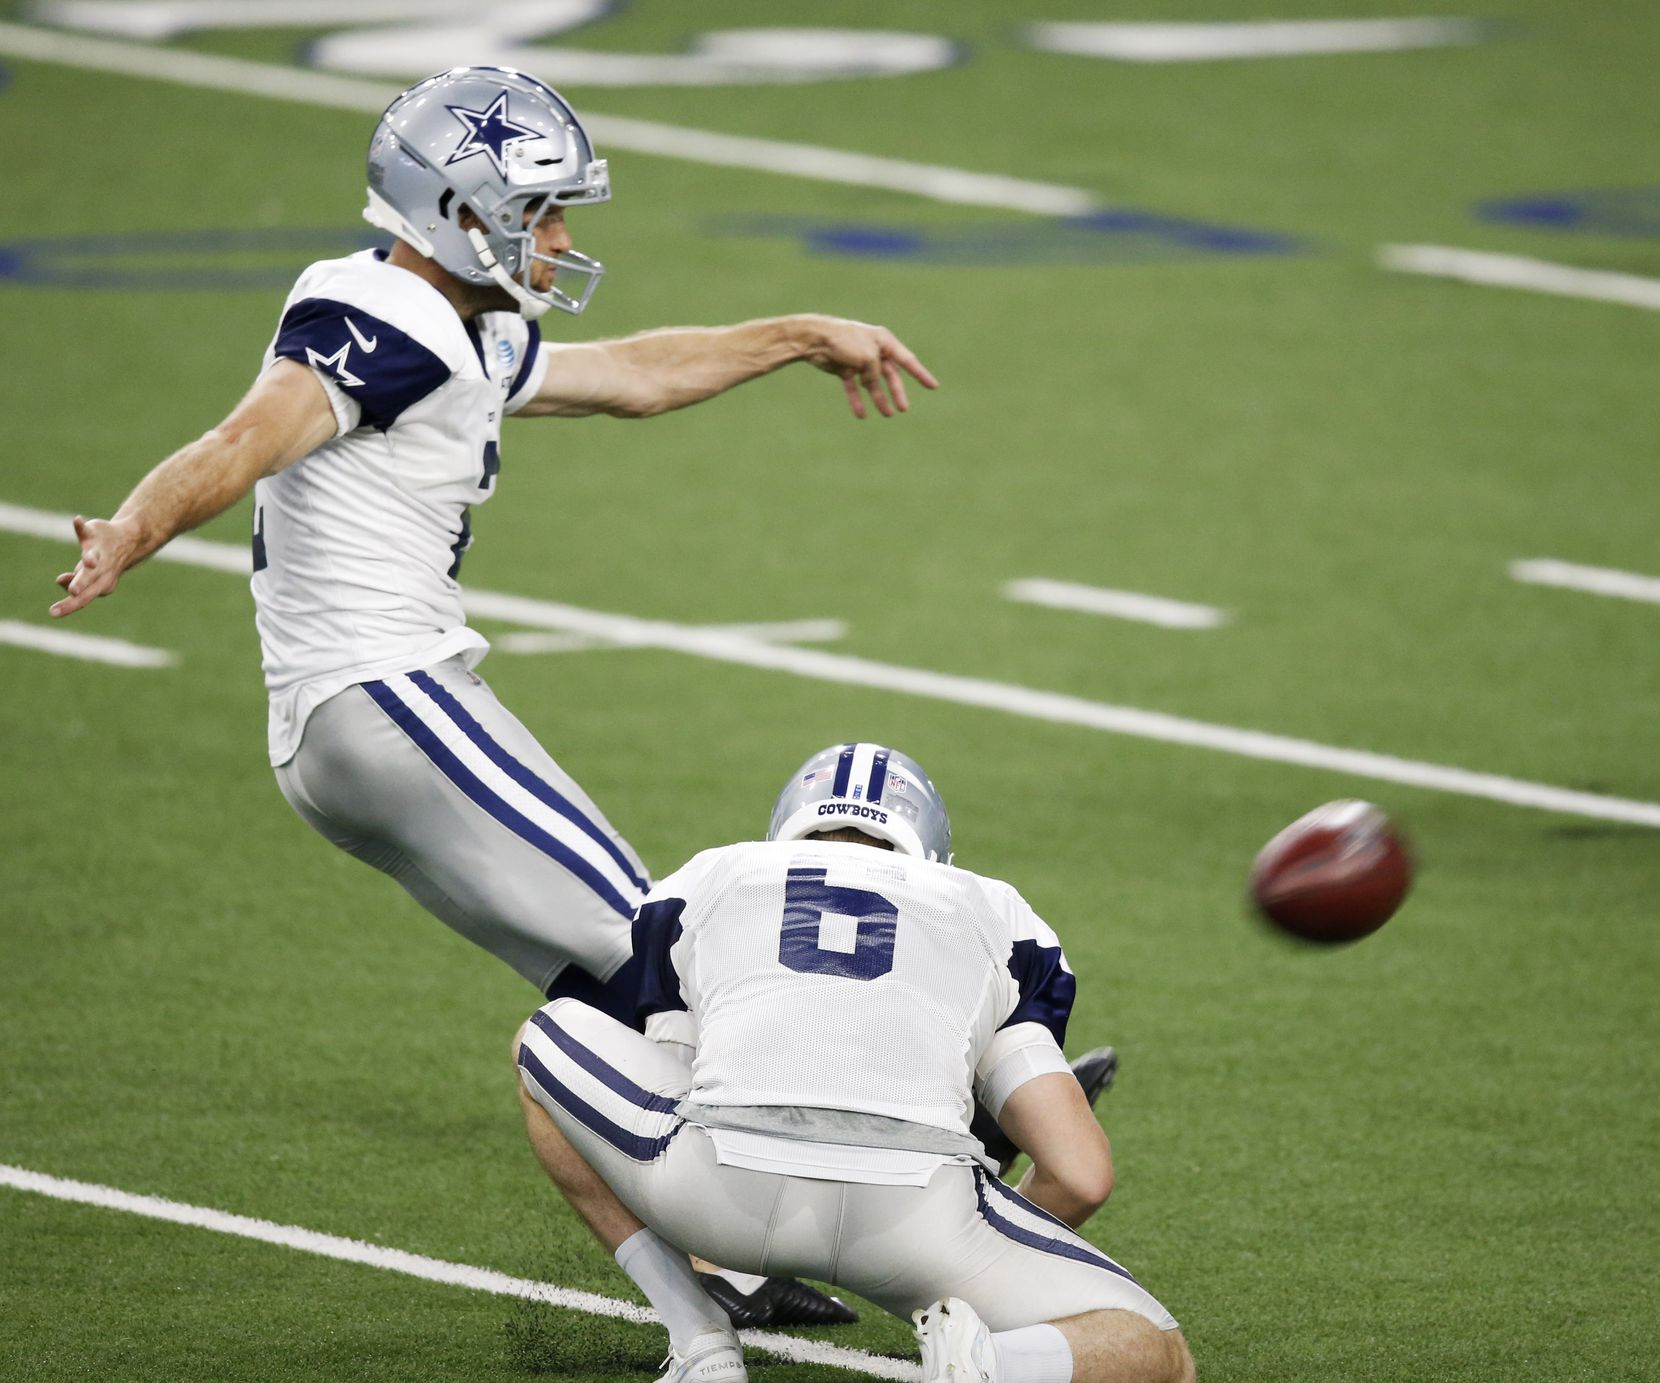 Dallas Cowboys place kicker Greg Zuerlein (2) attempts a field goal as Dallas Cowboys punter Chris Jones (6) held the ball during training camp at the Dallas Cowboys headquarters at The Star in Frisco, Texas on Tuesday, August 25, 2020. (Vernon Bryant/The Dallas Morning News)